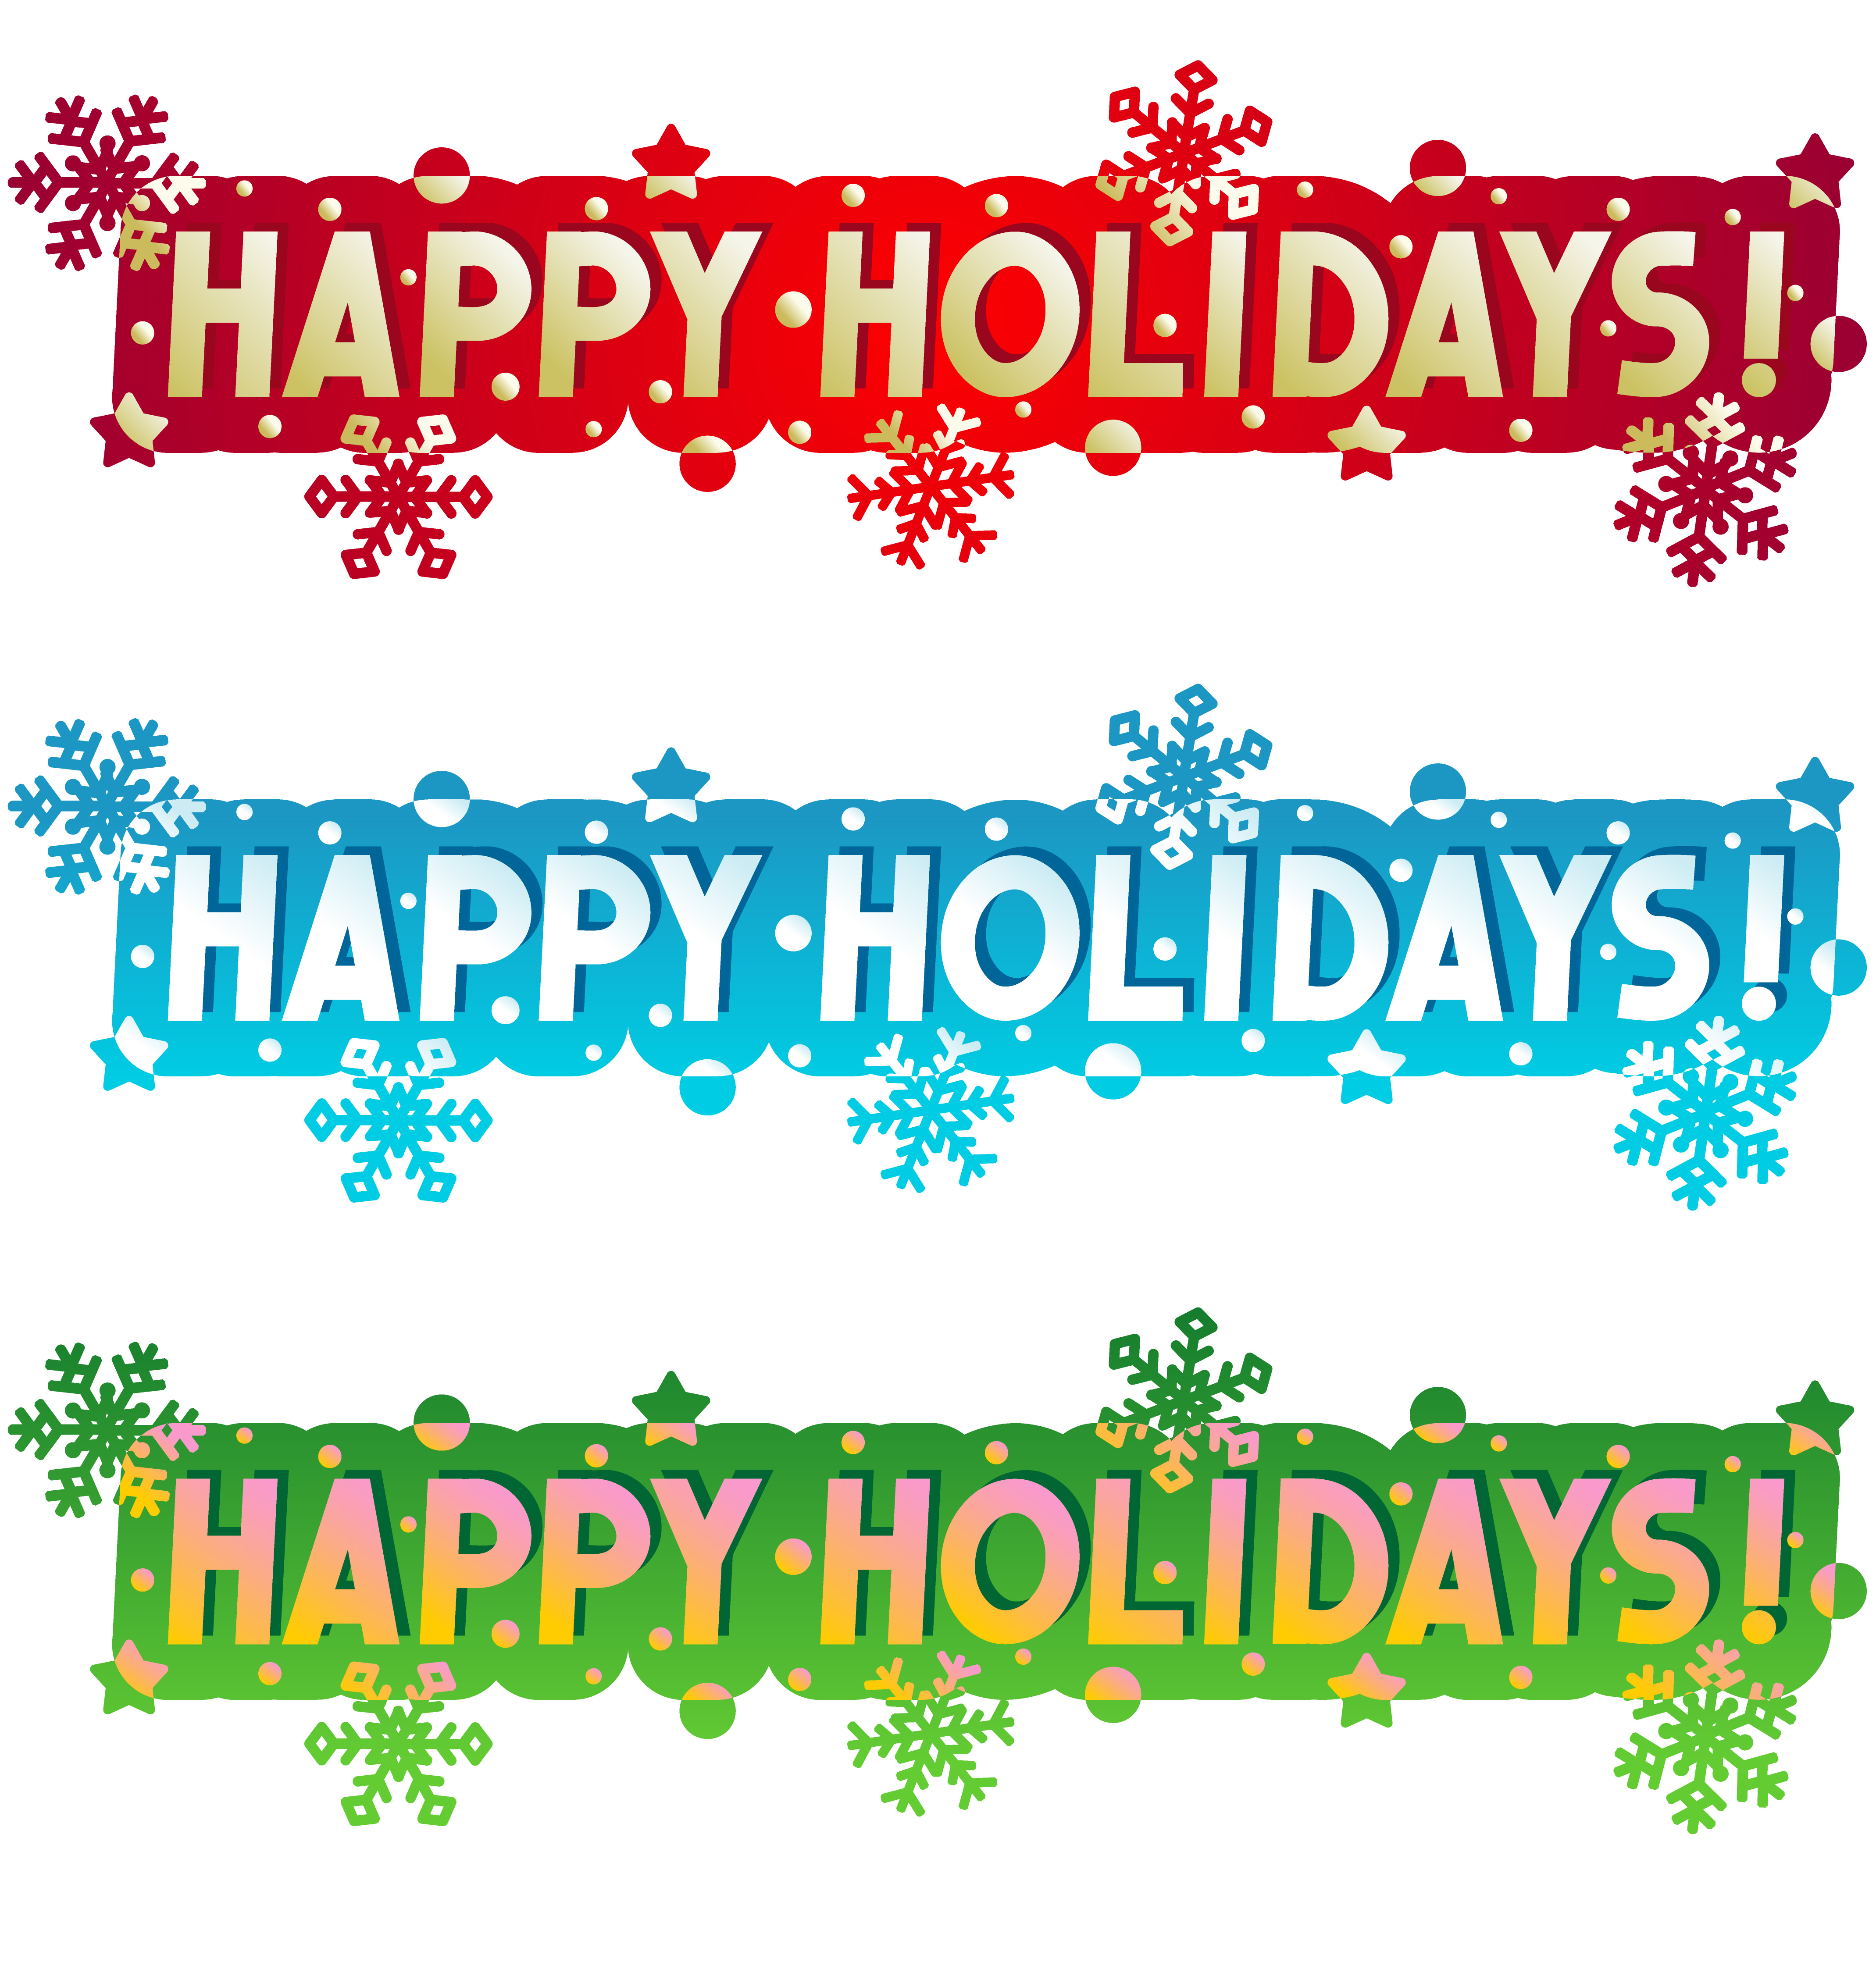 Holidays: Wishing You A Very Happy Holiday!